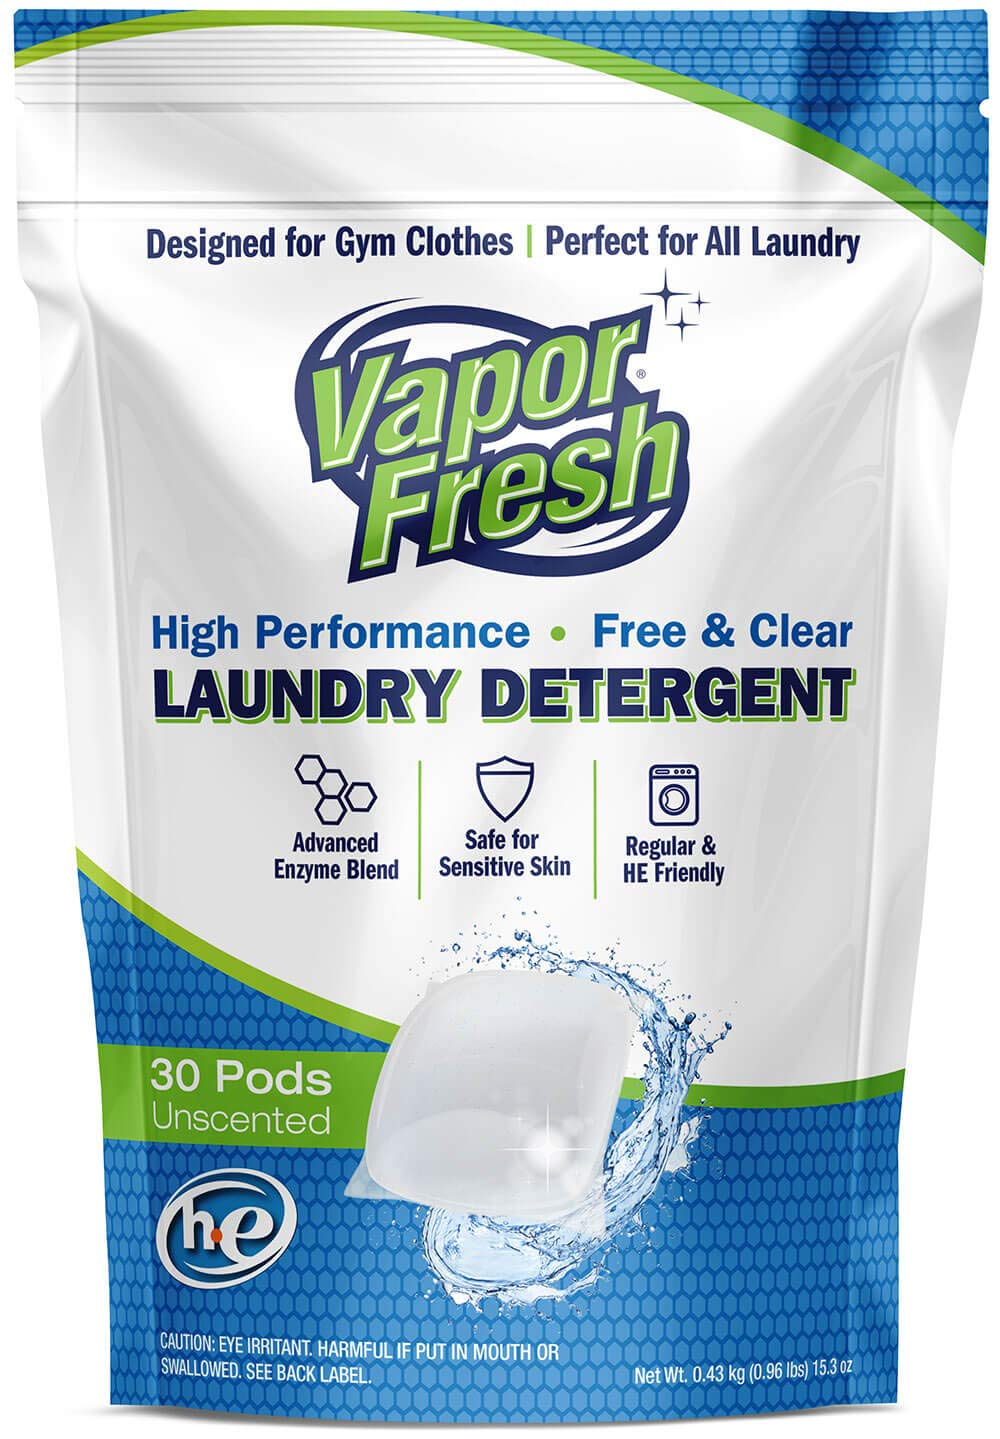 Vapor Fresh Laundry Detergent Pods - 30 Loads - Free and Clear - Unscented - HE Safe - Cold Water Enzymes - Ideal Laundry Soap for Sports and Activewear - 30 Pacs